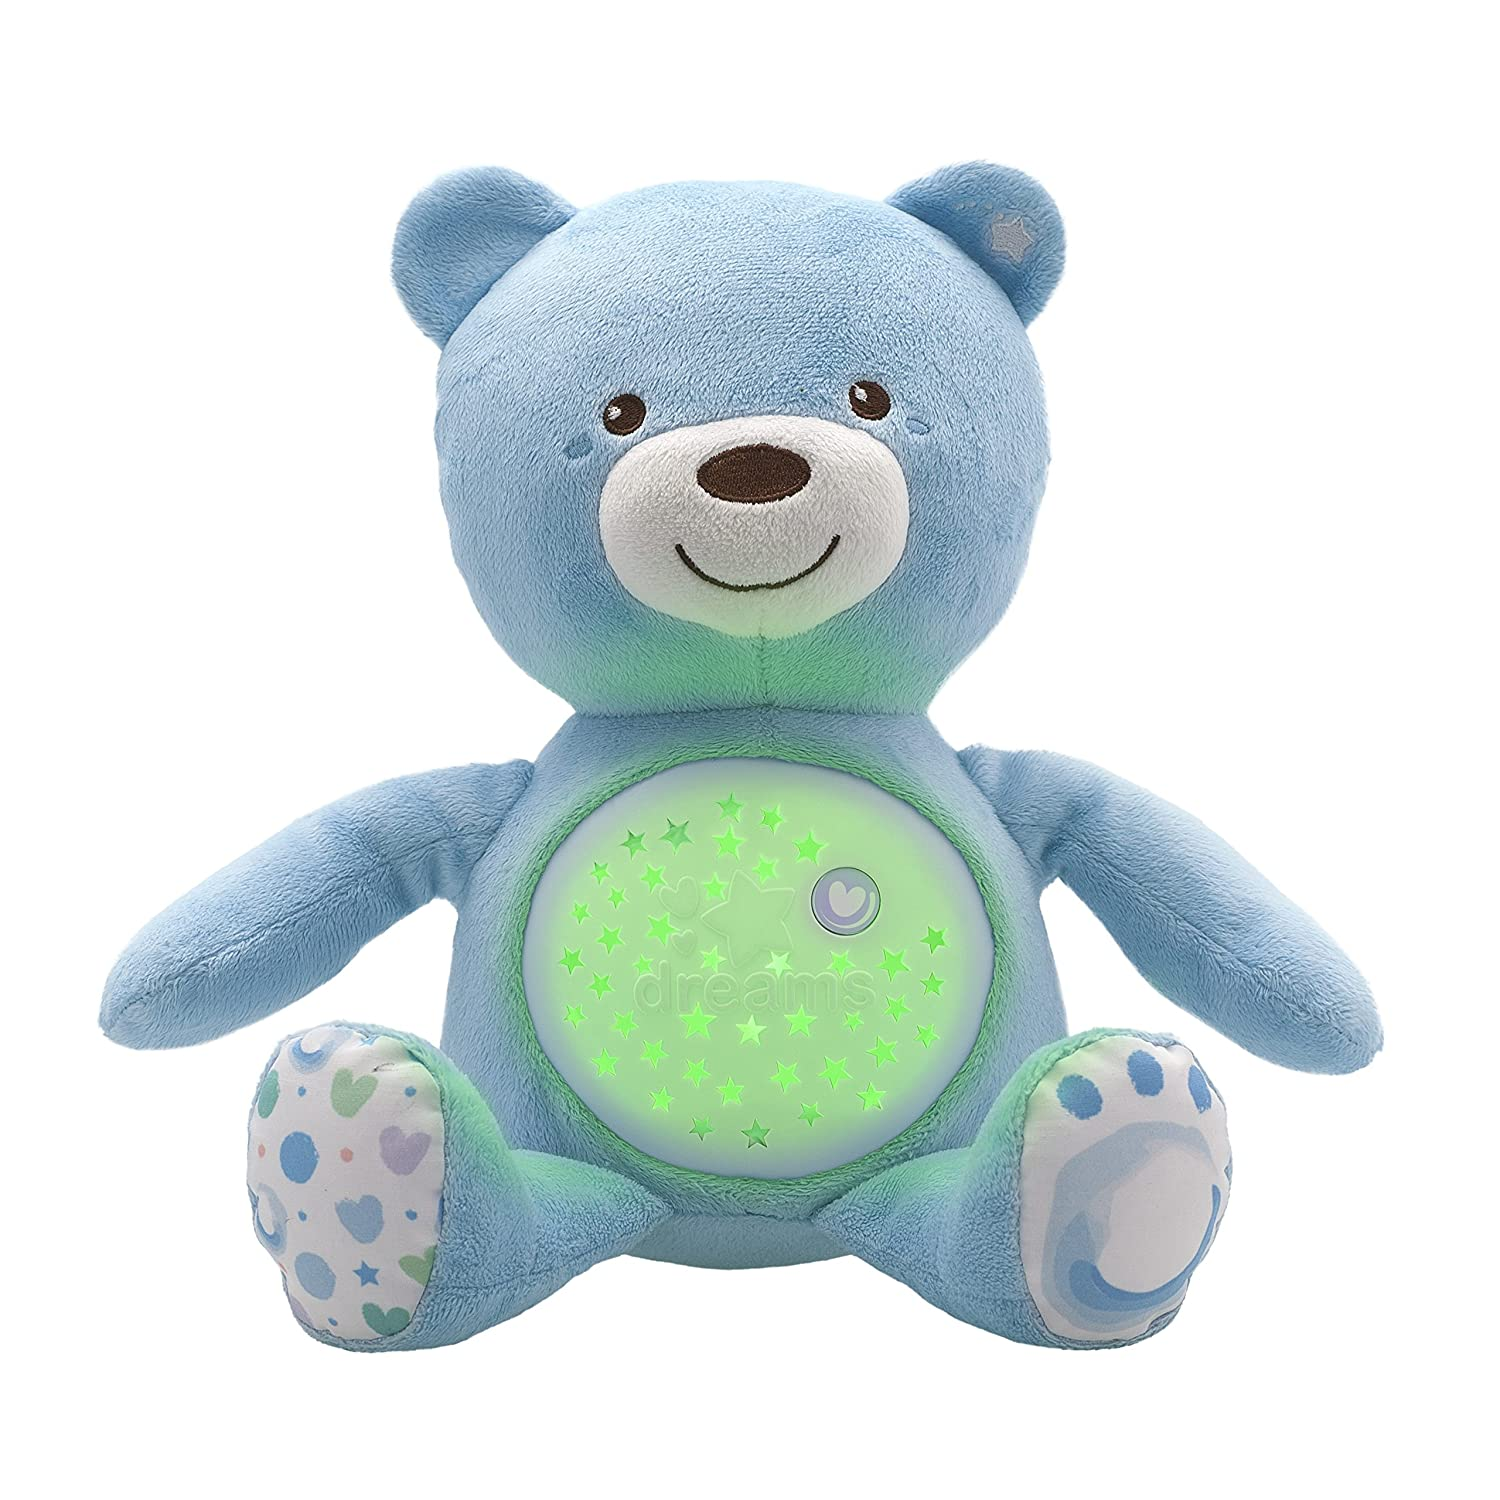 Chicco First Dreams Baby Bear Blue Musical Night Light Plush Teddy Toy Artsana UK Ltd 8015200000